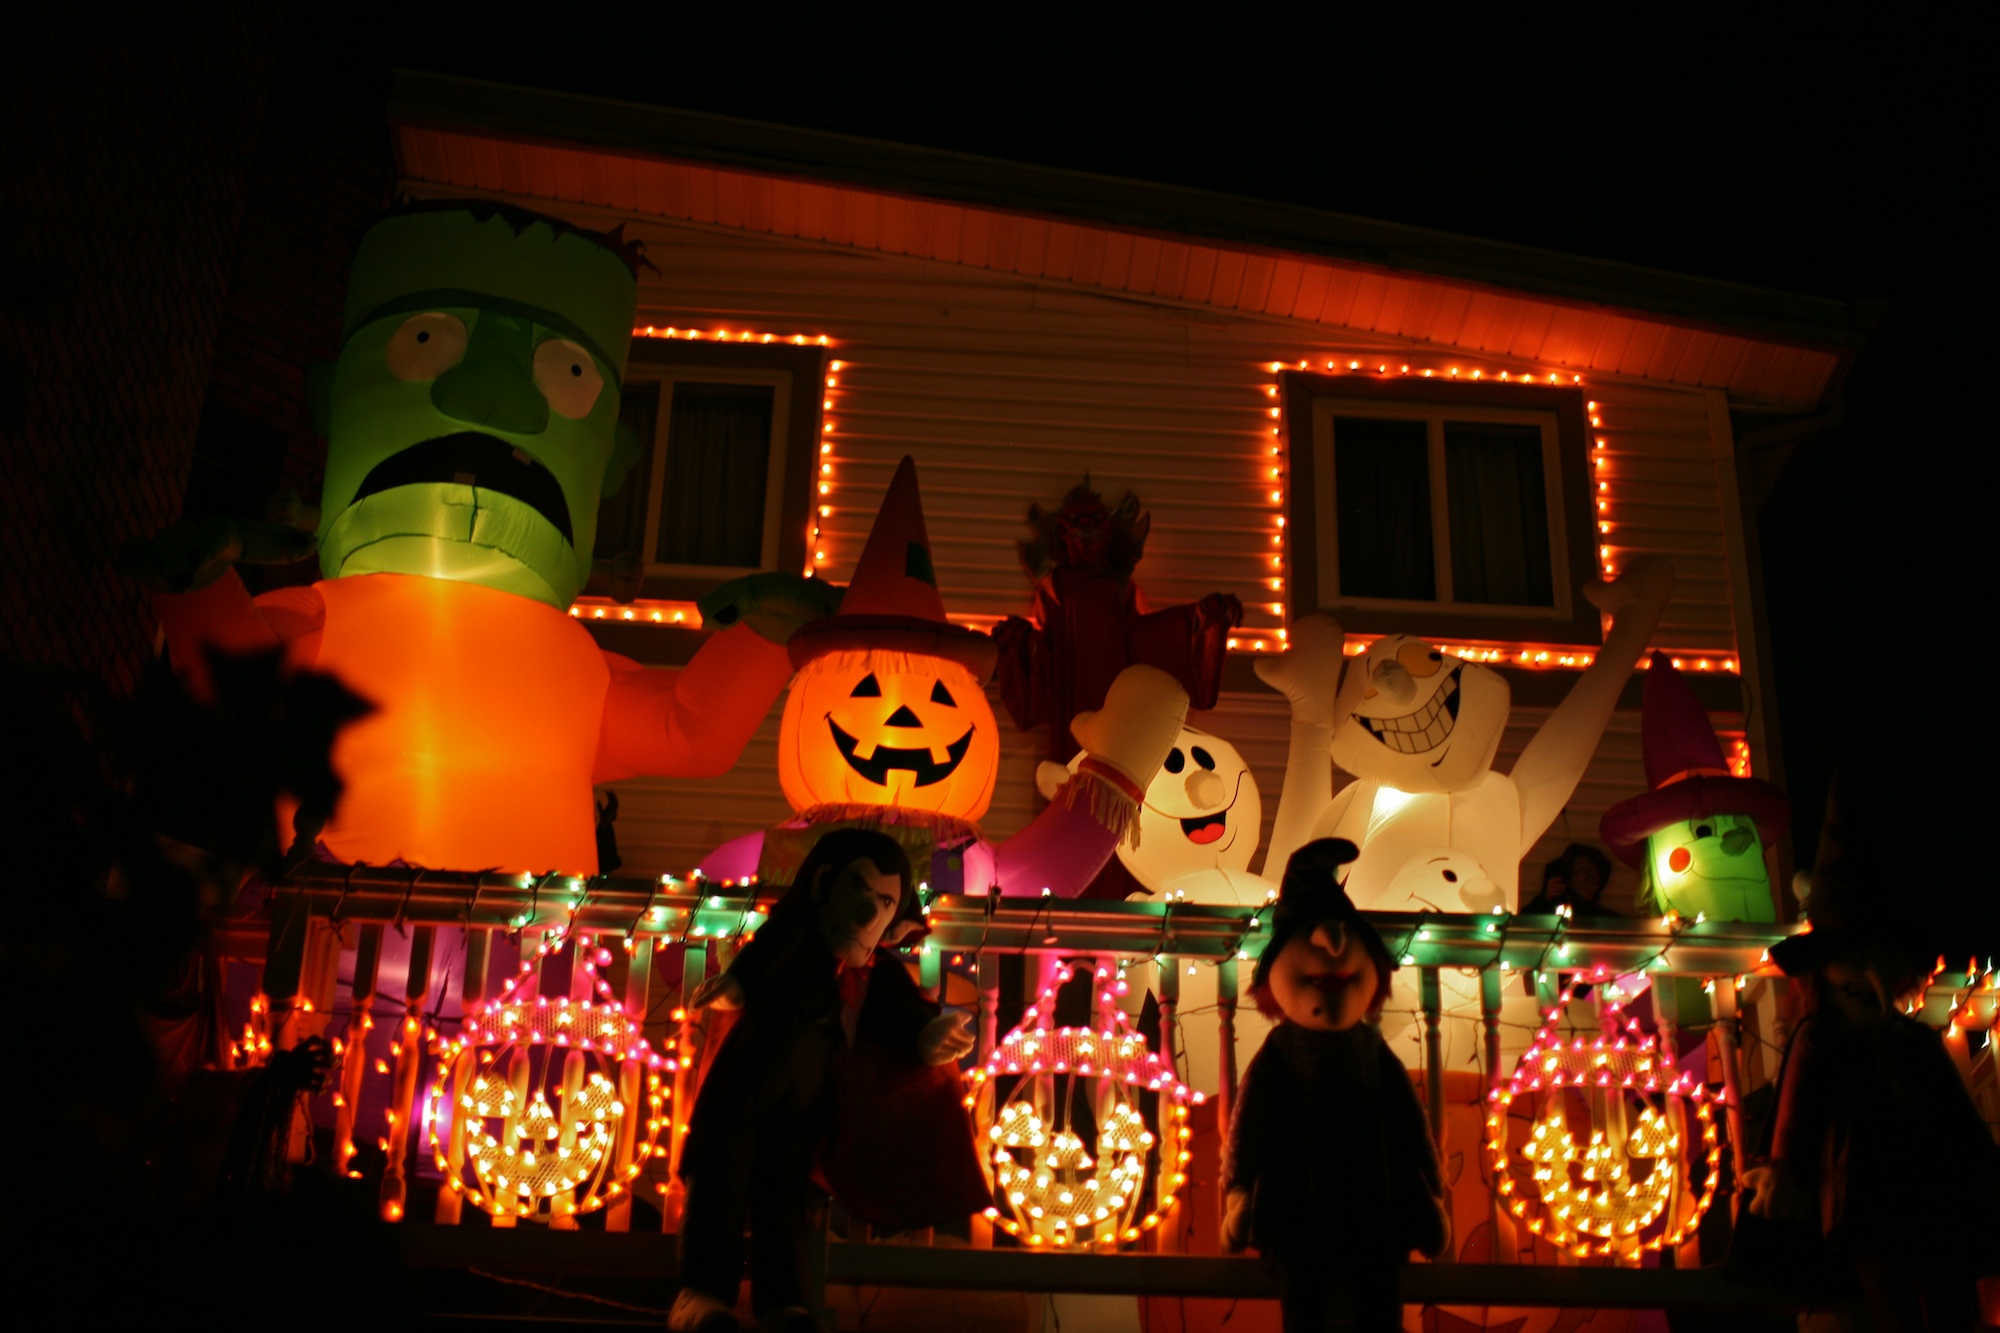 Outdoor inflatable halloween decorations - Halloween House